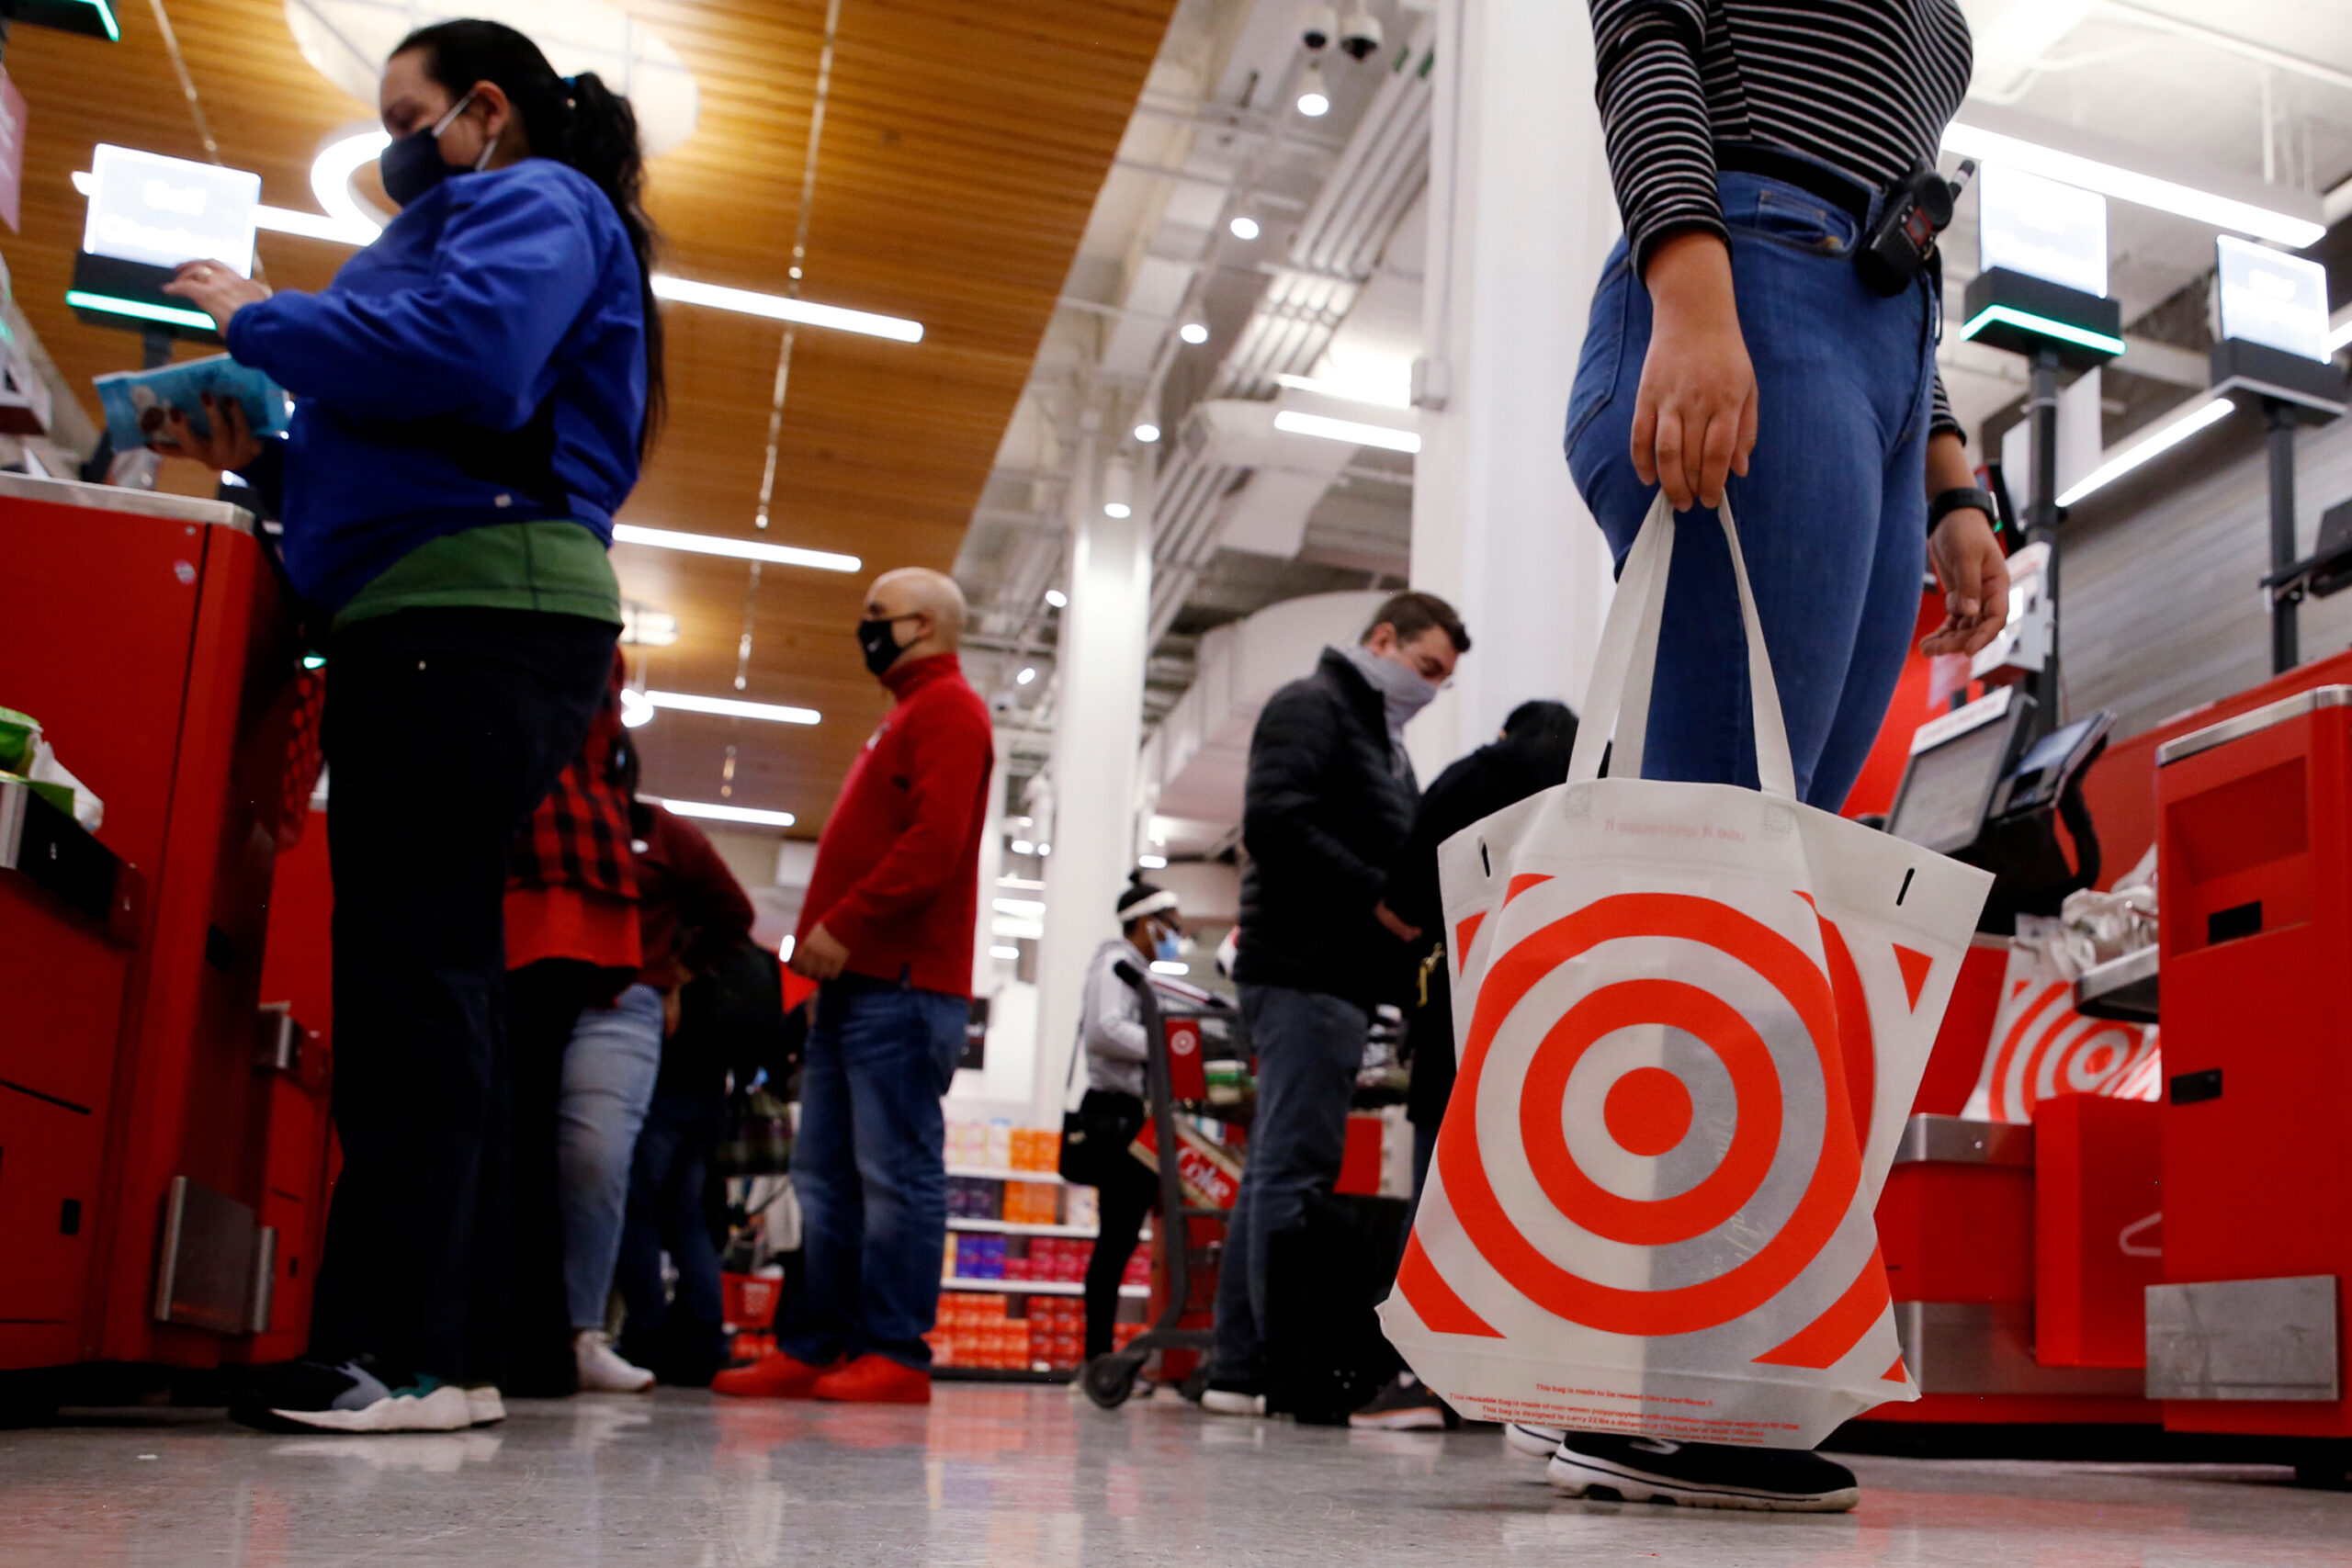 <i>John Smith/VIEWpress/Corbis/Getty Images</i><br/>Target will require masks for workers and recommend masks for all customers in areas with substantial or high risk of transmission.